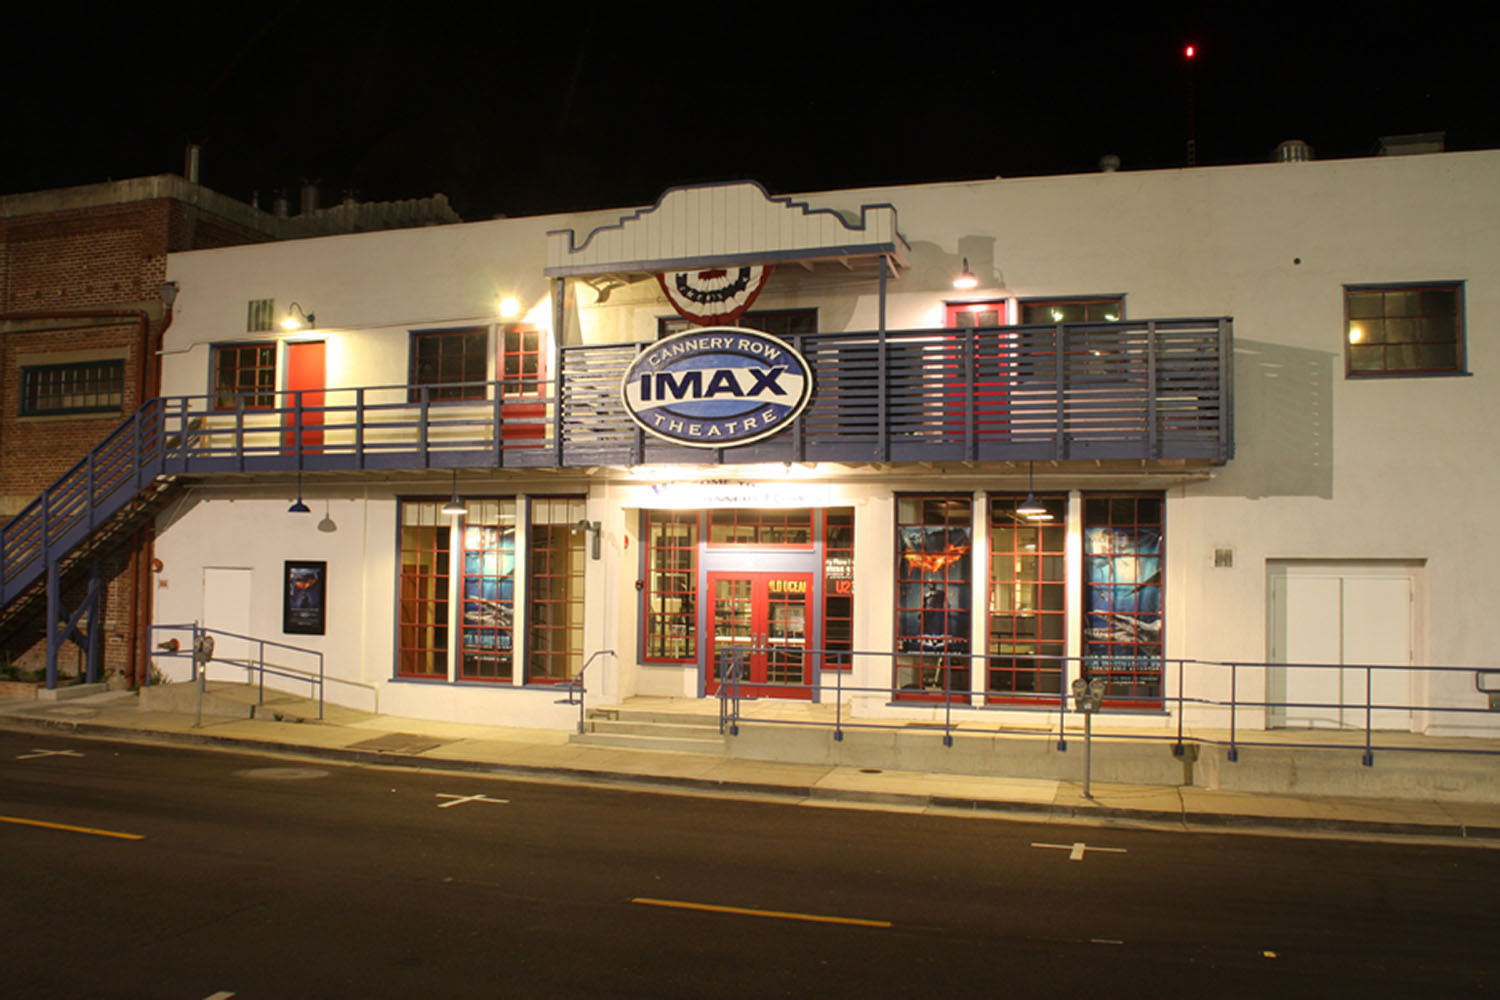 IMAX Theater at Cannery Row